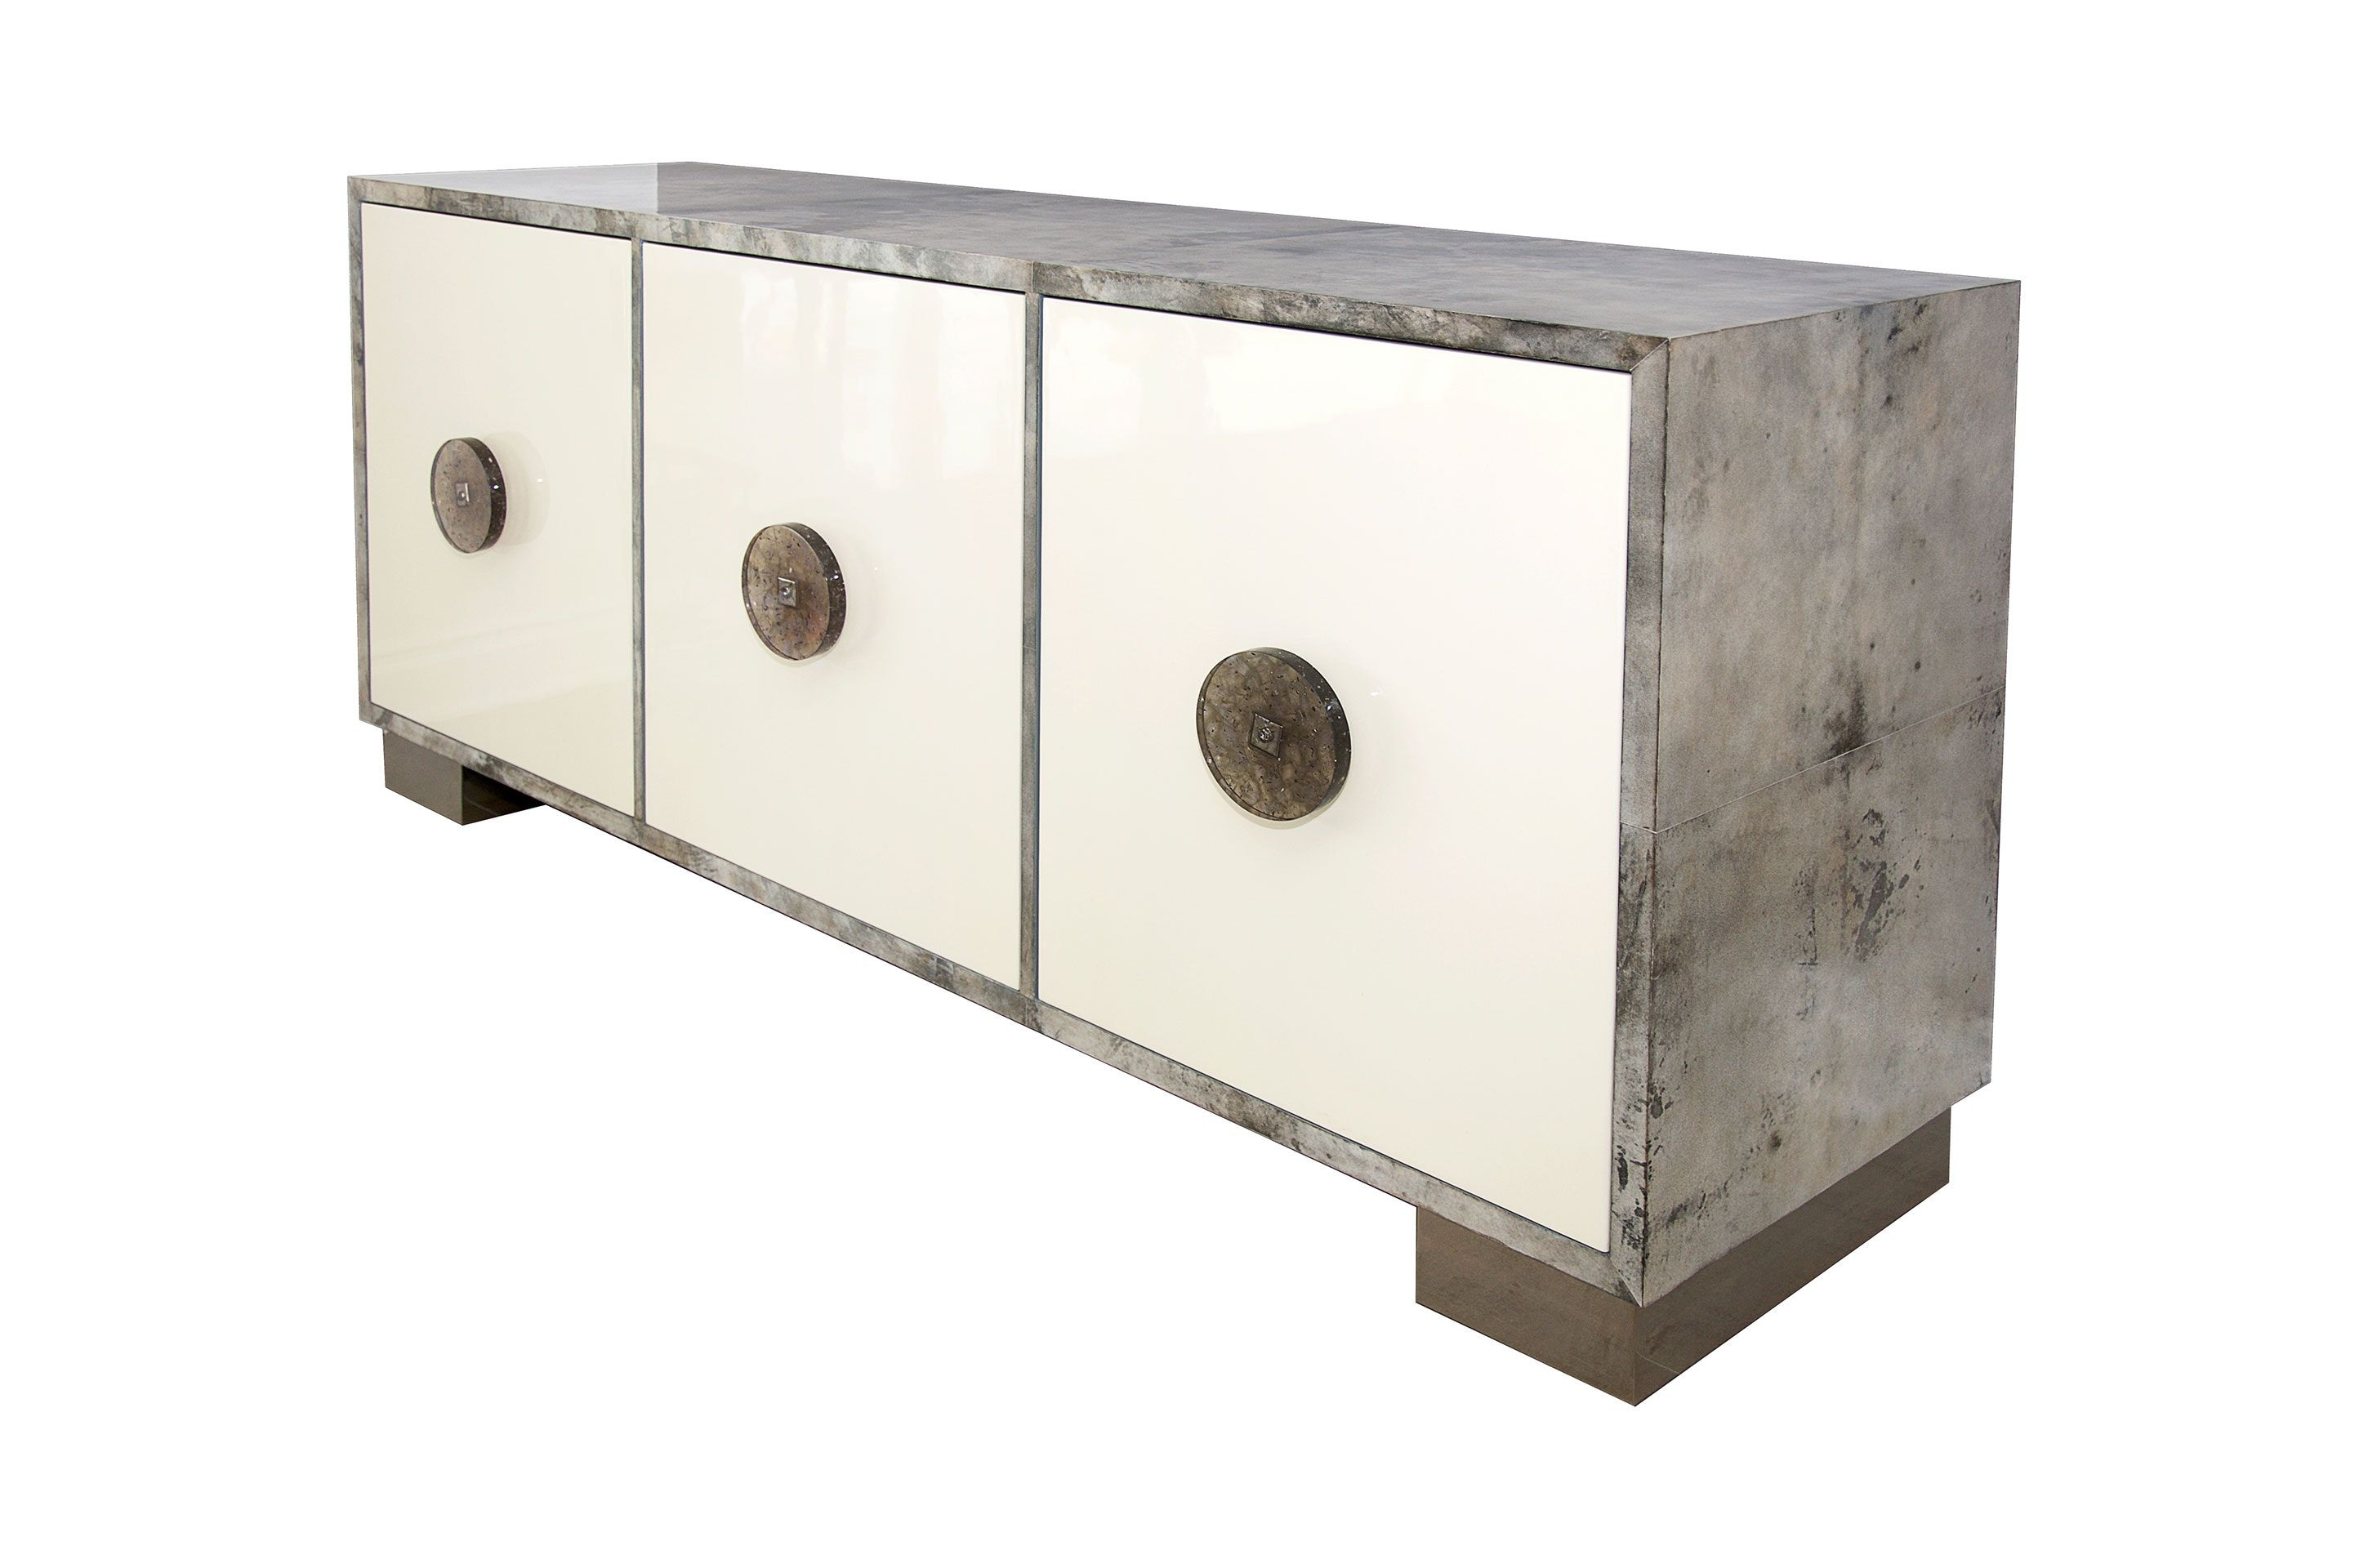 Buy Marais Sideboard By On Madison, Inc.   Made To Order Designer Furniture  From Dering Hallu0027s Collection Of Contemporary Transitional Mid Century /  Modern ...